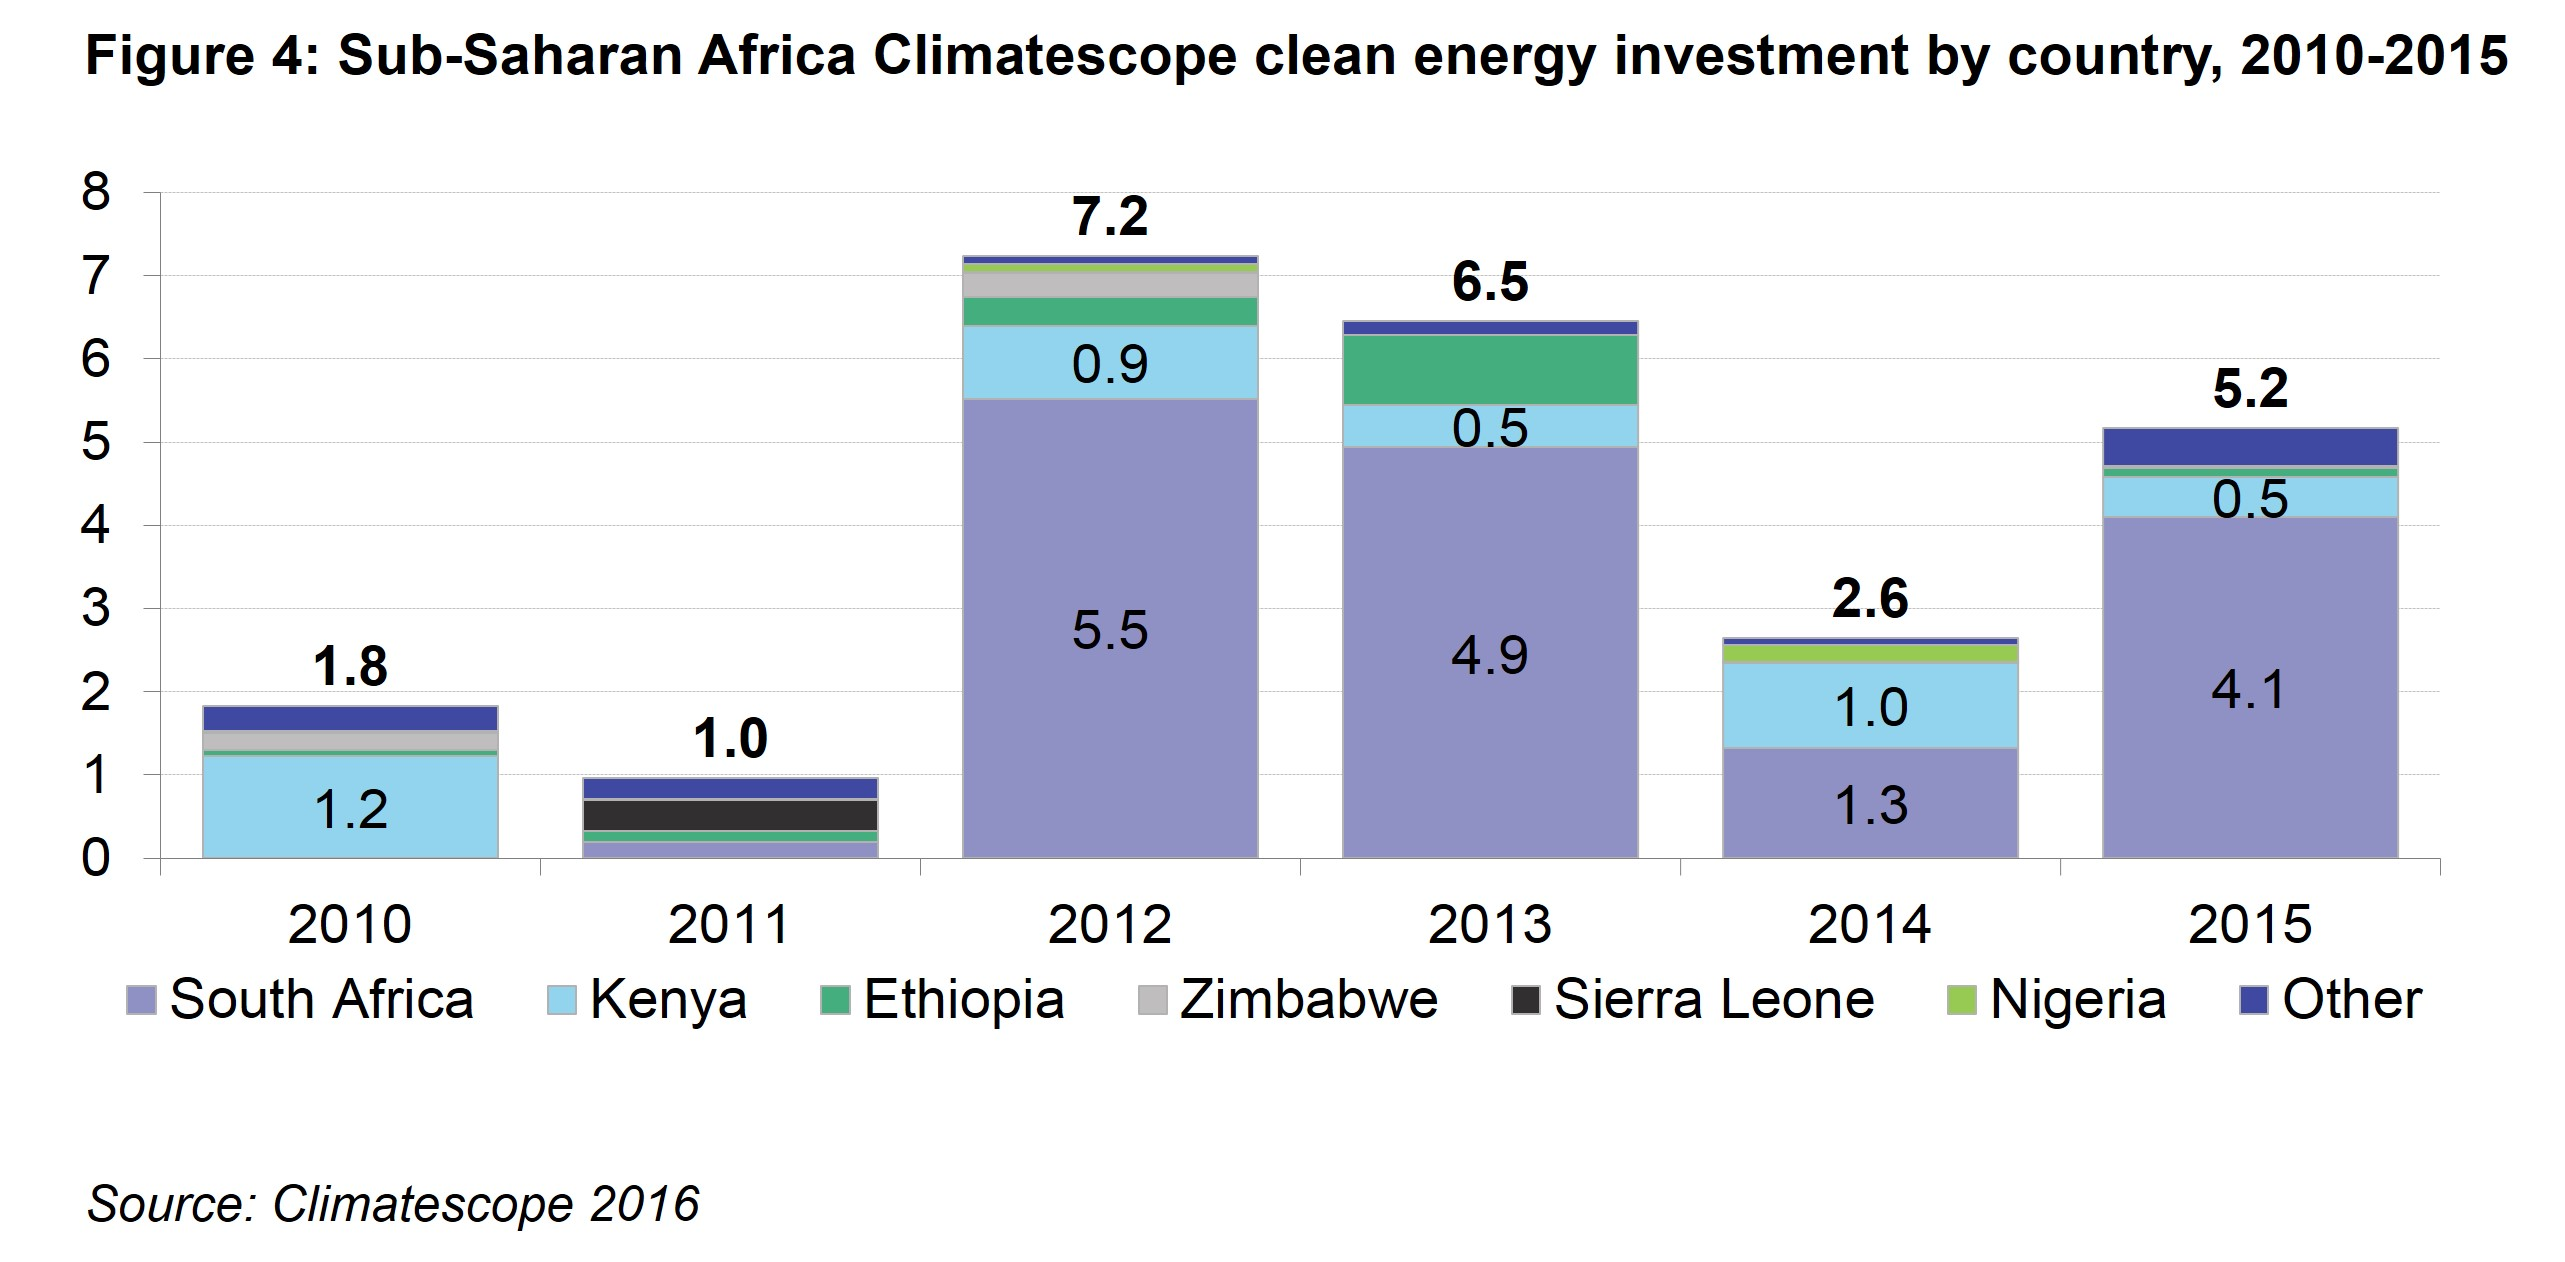 AM Fig 4 - Sub-Saharan Africa Climatescope clean energy investment by country, 2010 - 2015